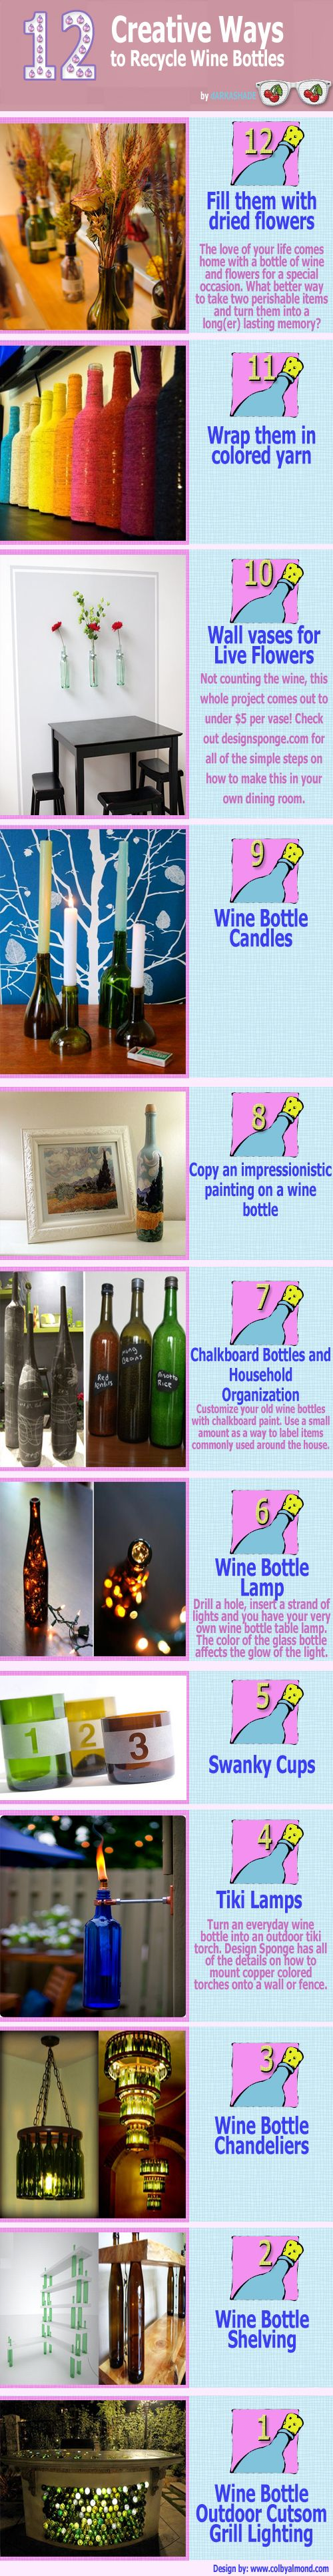 Recycle Wine Bottles: Wine Bottle Crafts, Bottle Ideas, Reuse Wine Bottle, Recycled Wine Bottle, Cool Ideas, Wine Bottles, Empty Wine Bottle, Things To Do, Old Wine Bottle